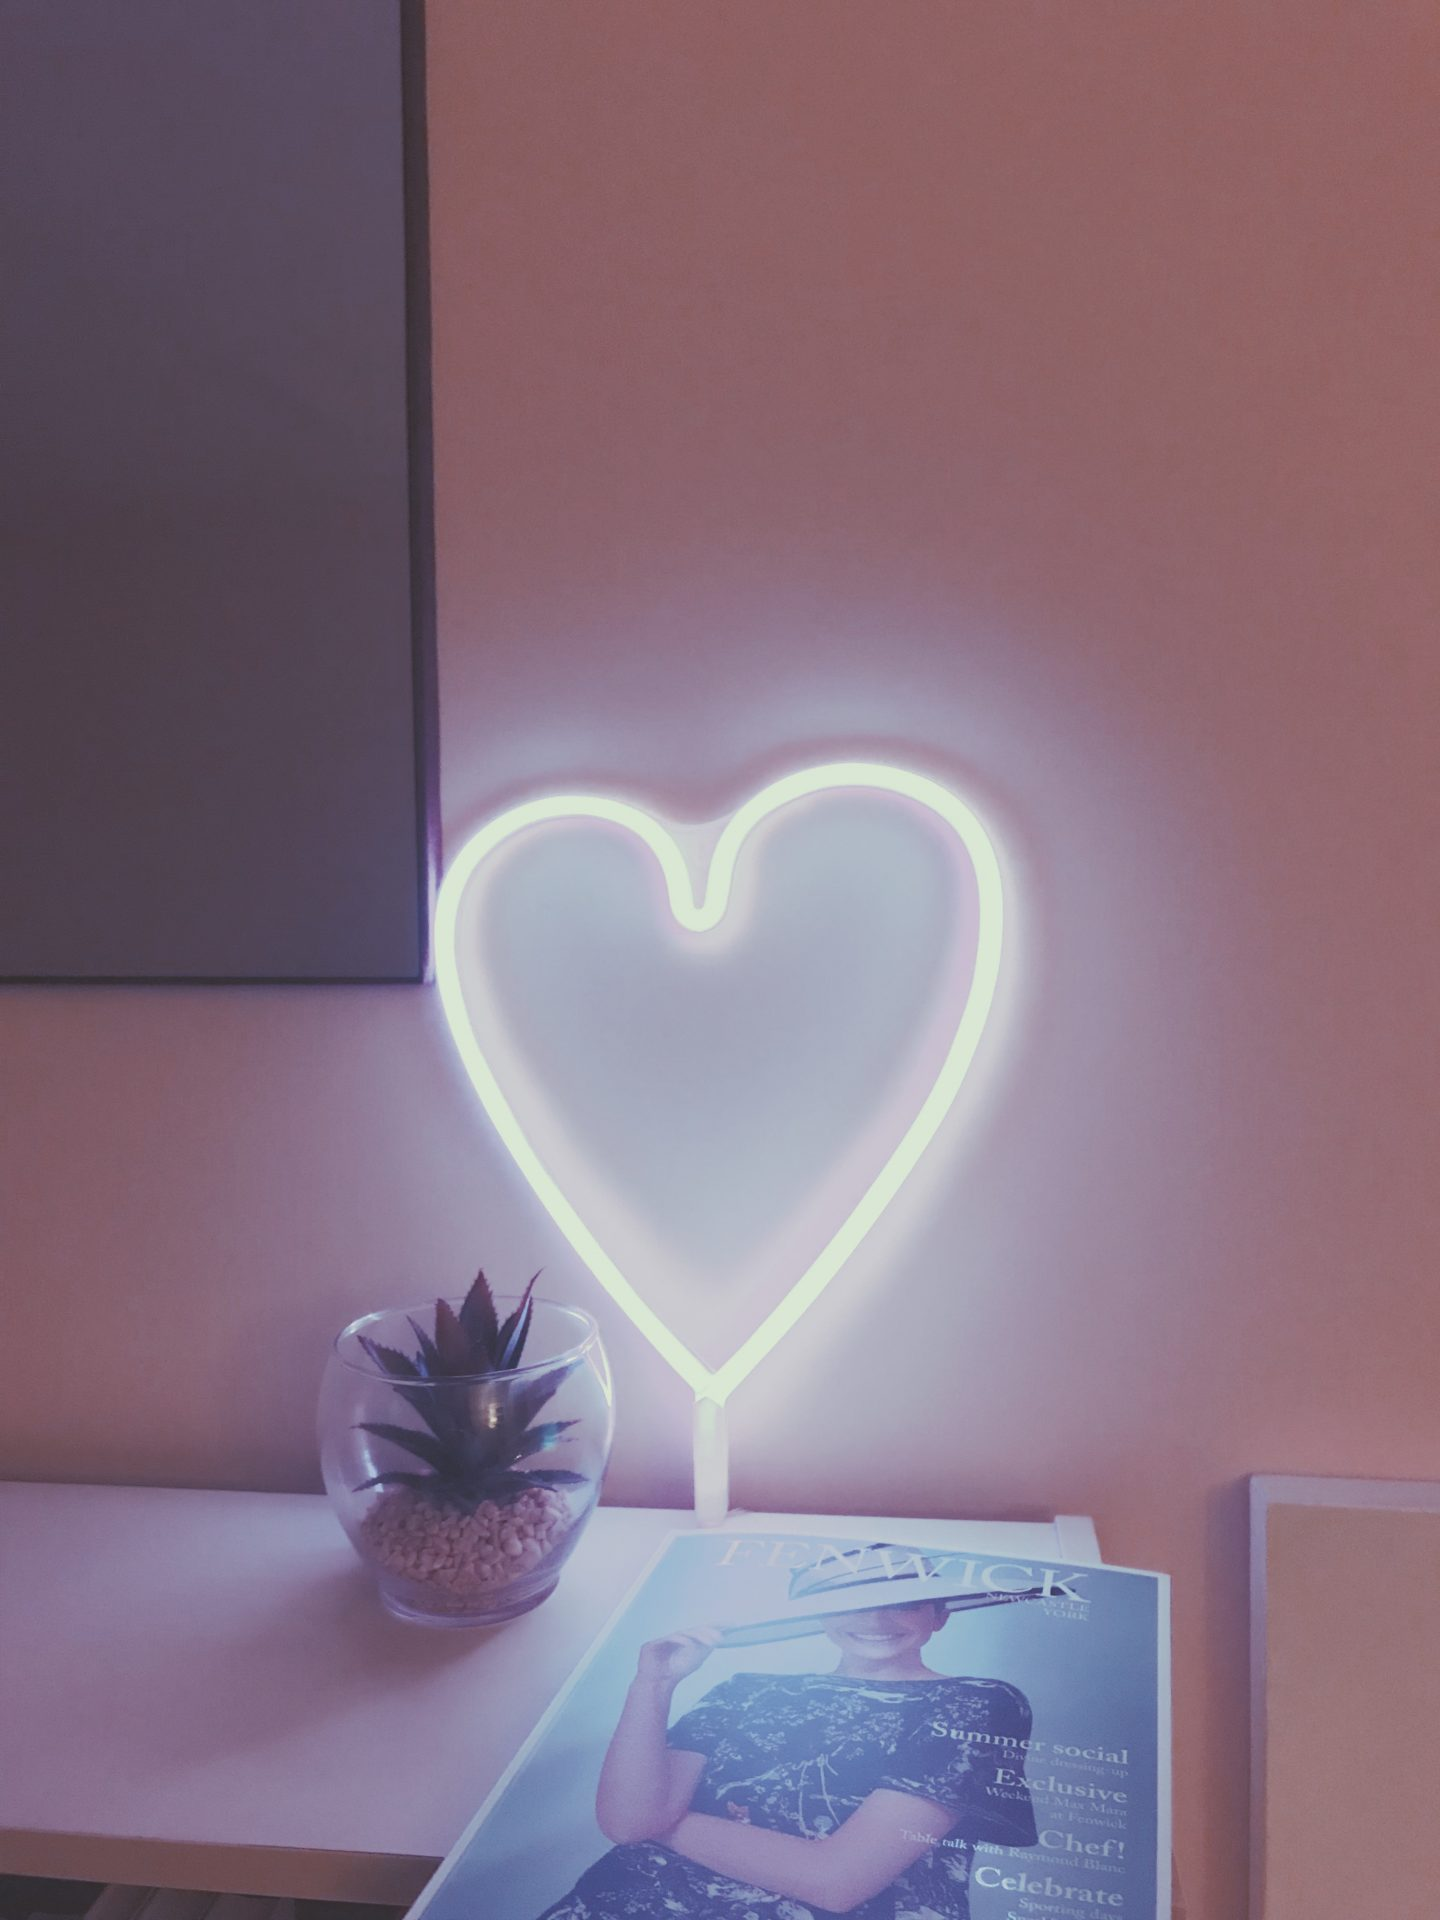 HEART SHAPED NEON LIGHT